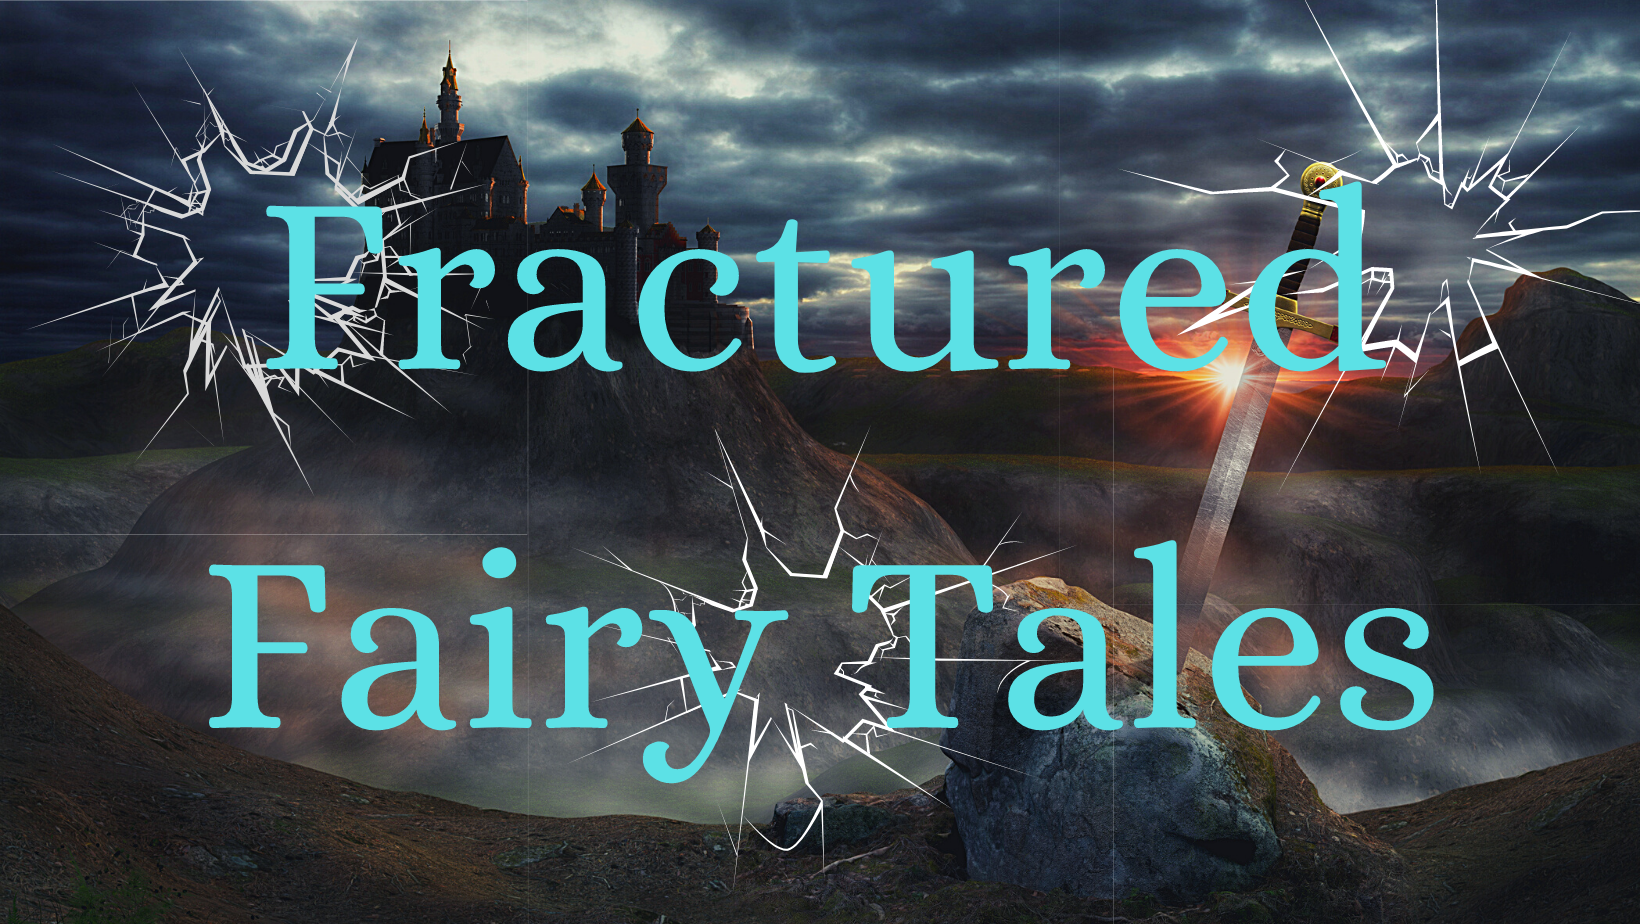 Imagining Your Own Fractured Fairy Tale